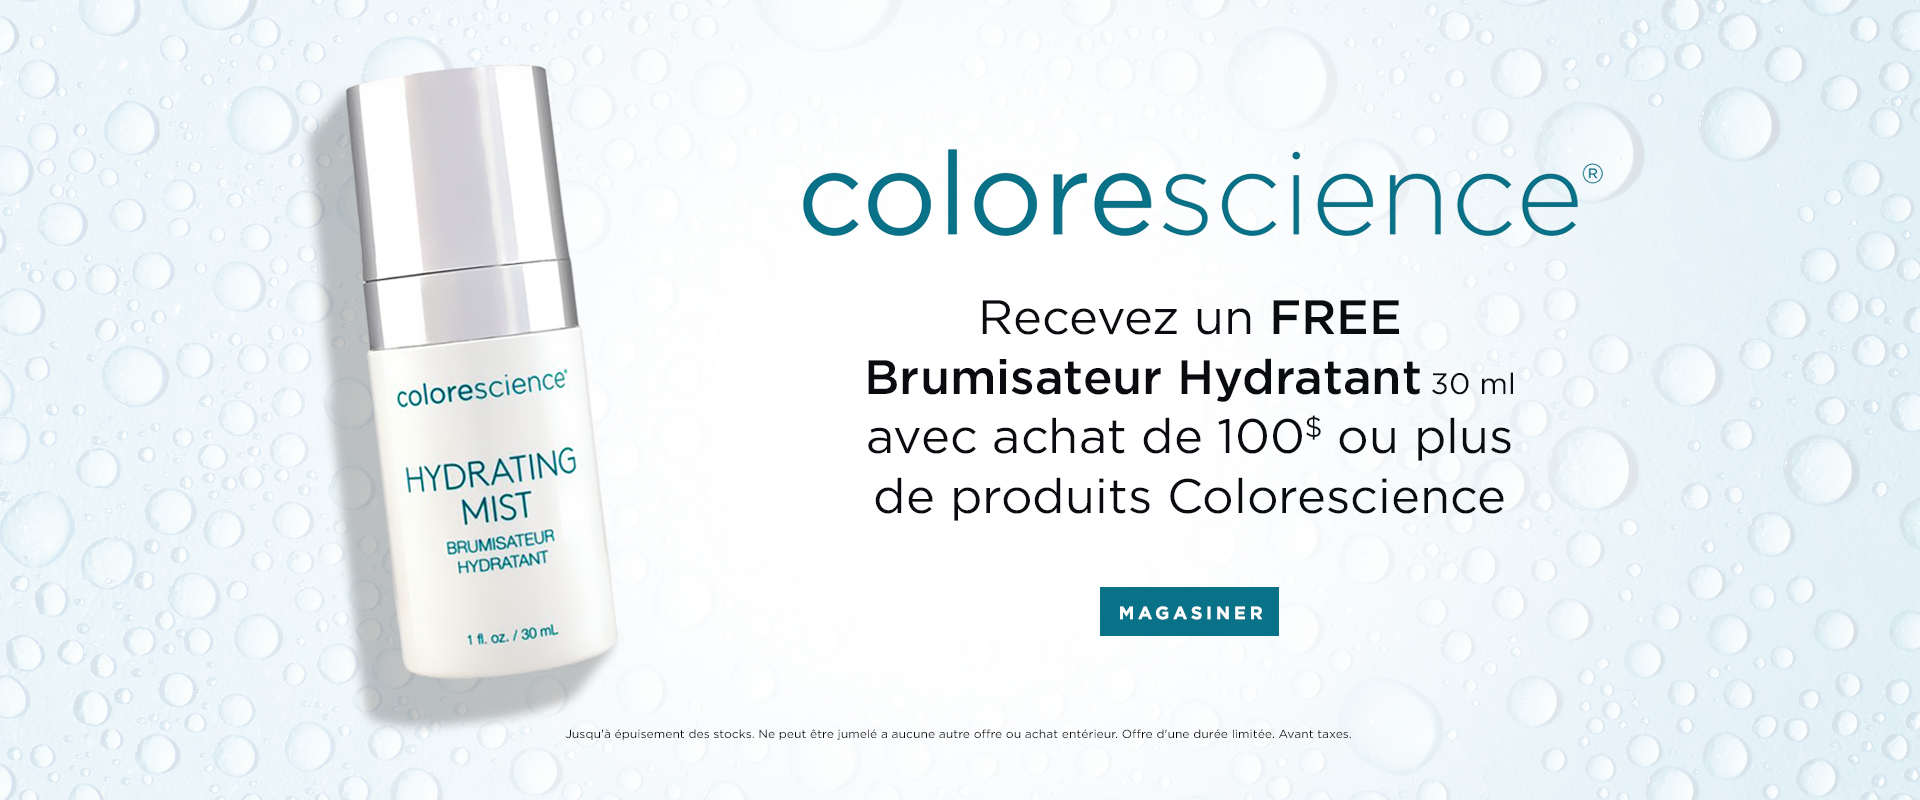 Colorescience Cadeau